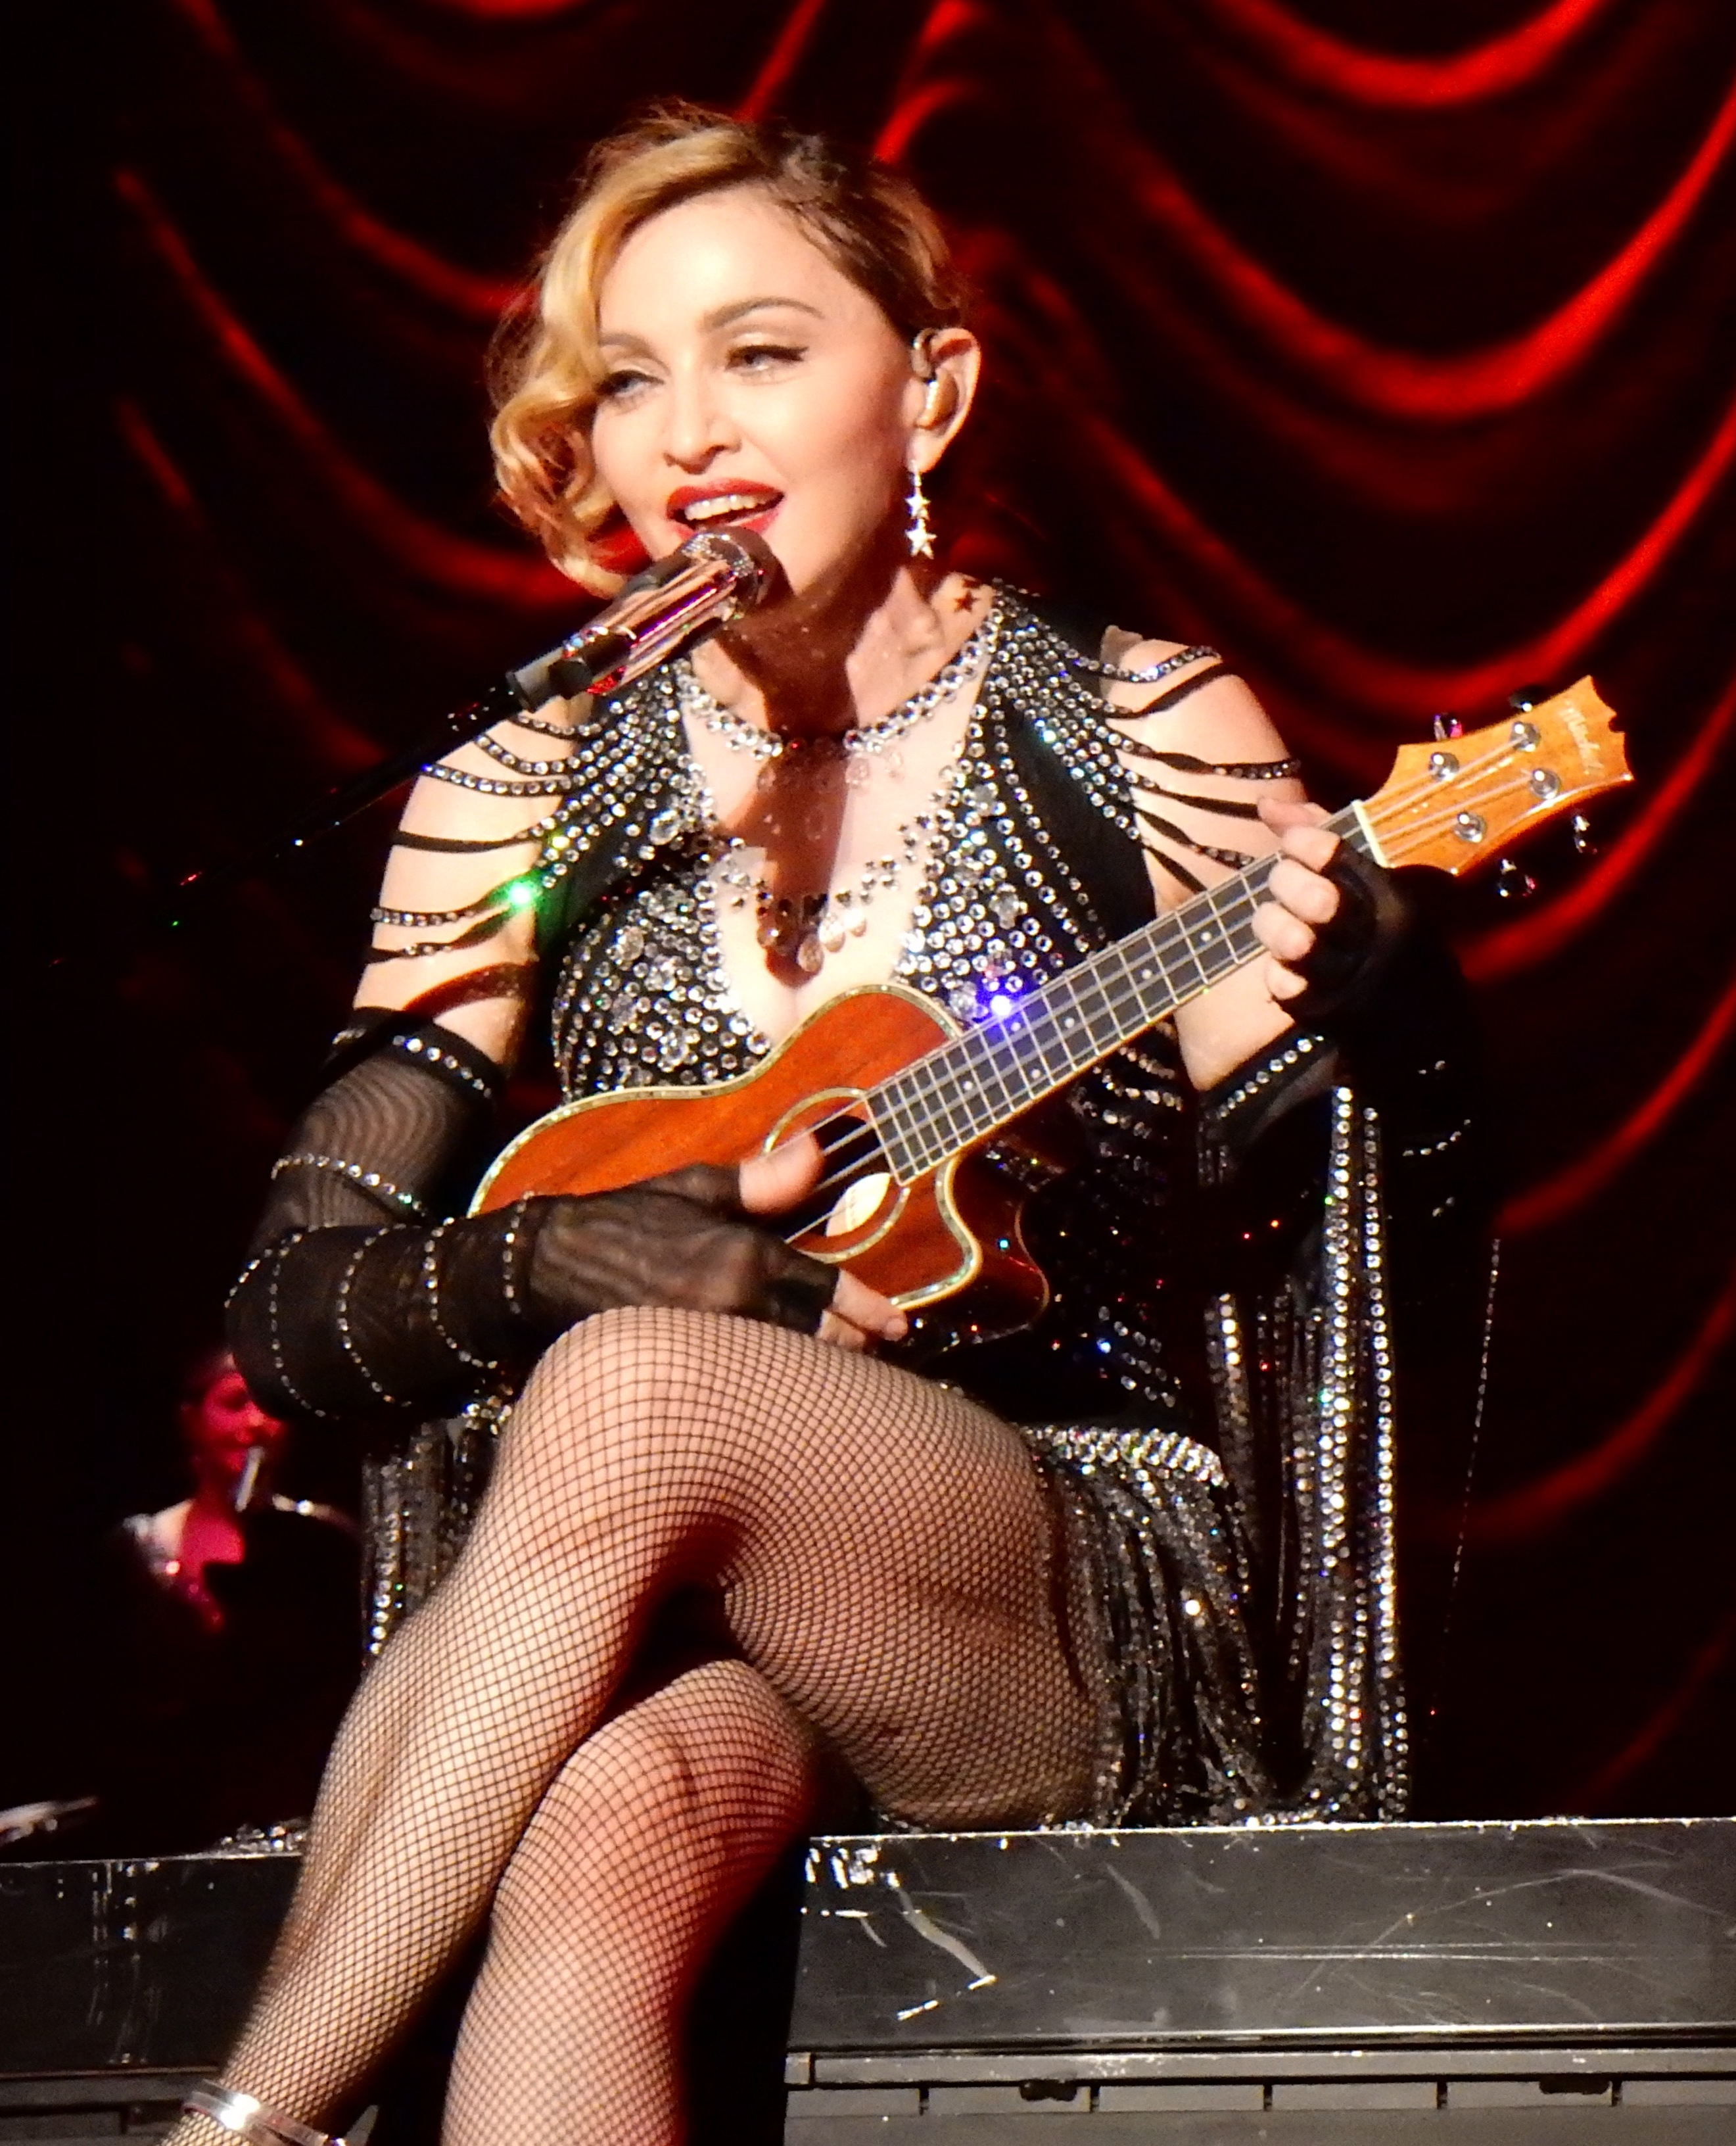 File:Madonna - Rebel Heart Tour Cologne 2 (22851518577) (cropped)2 ...